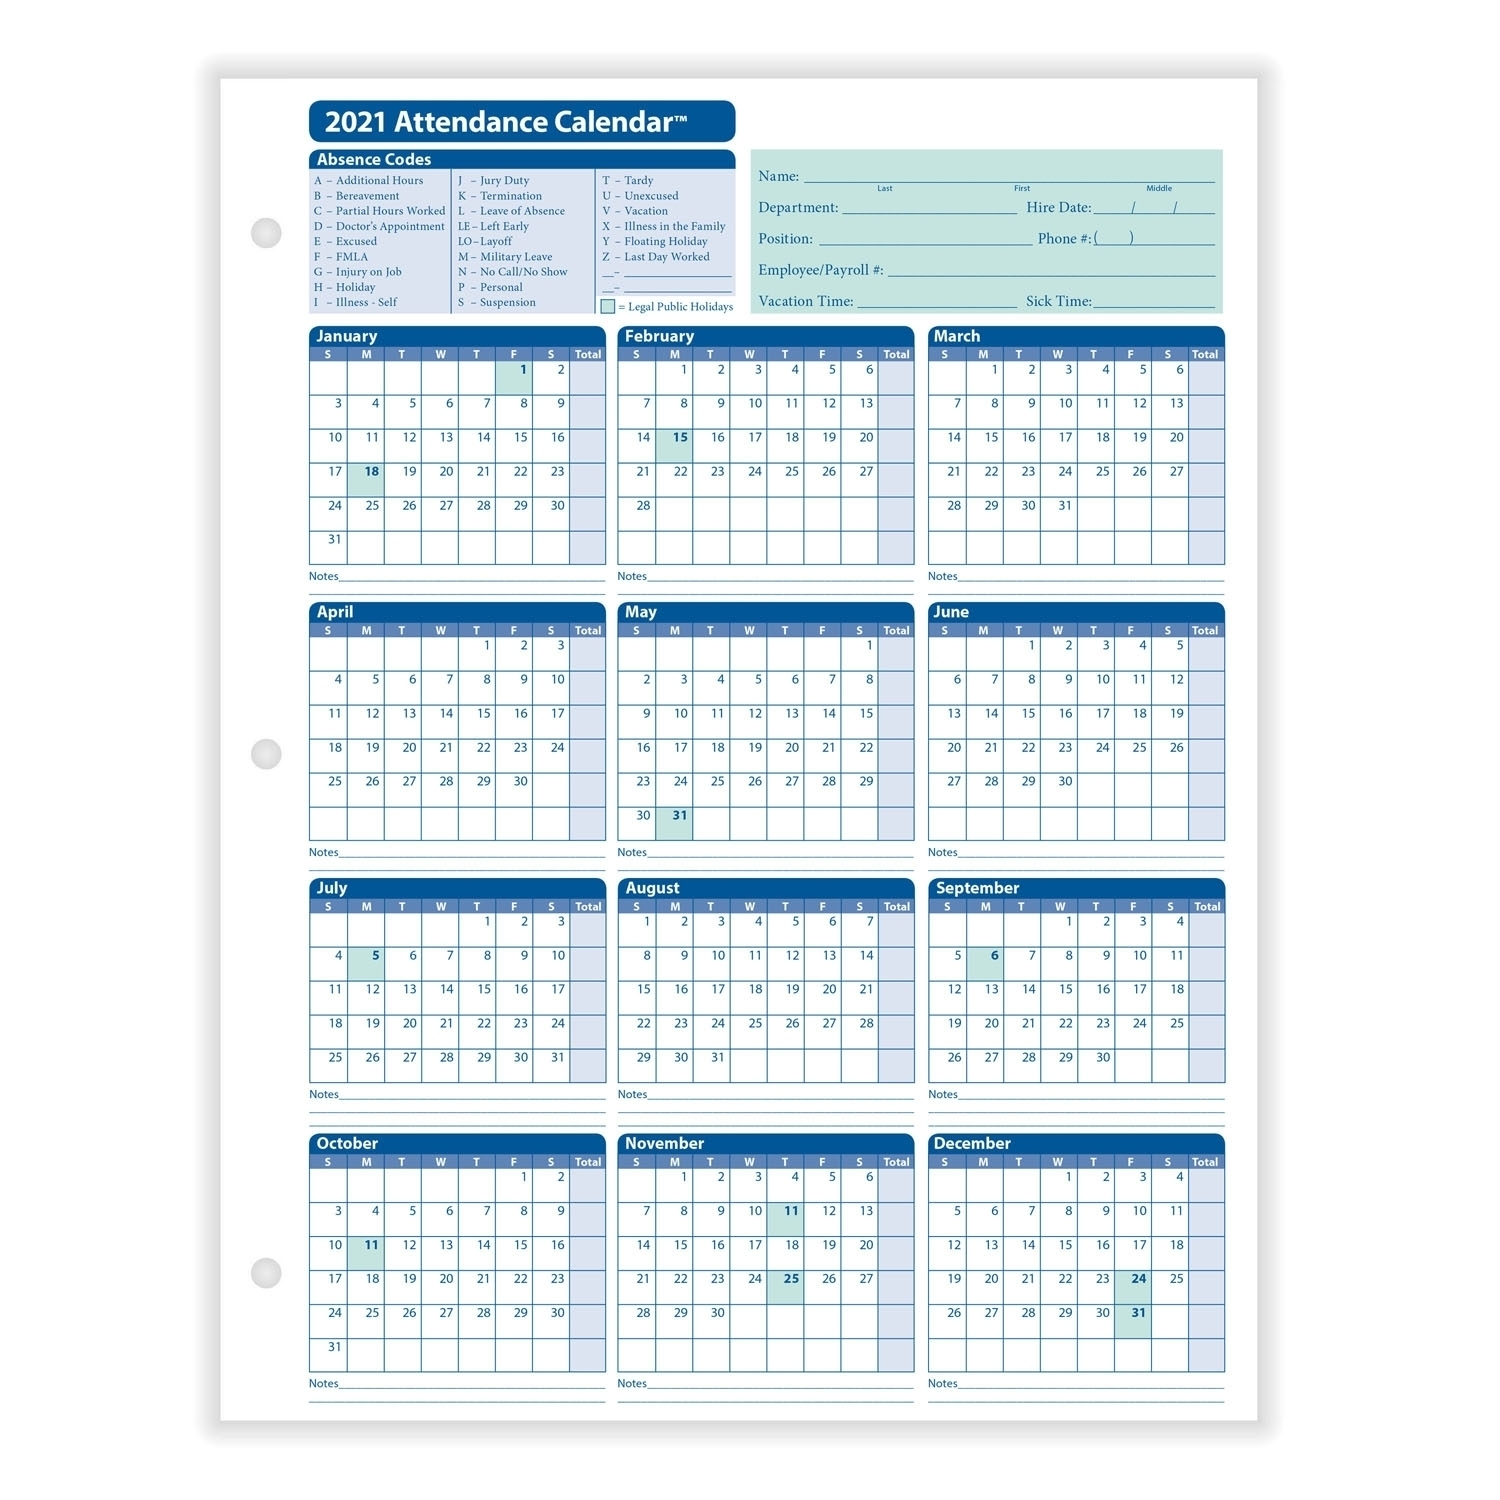 Printable Depo Provera Schedule For 2021 | Best Calendar Example